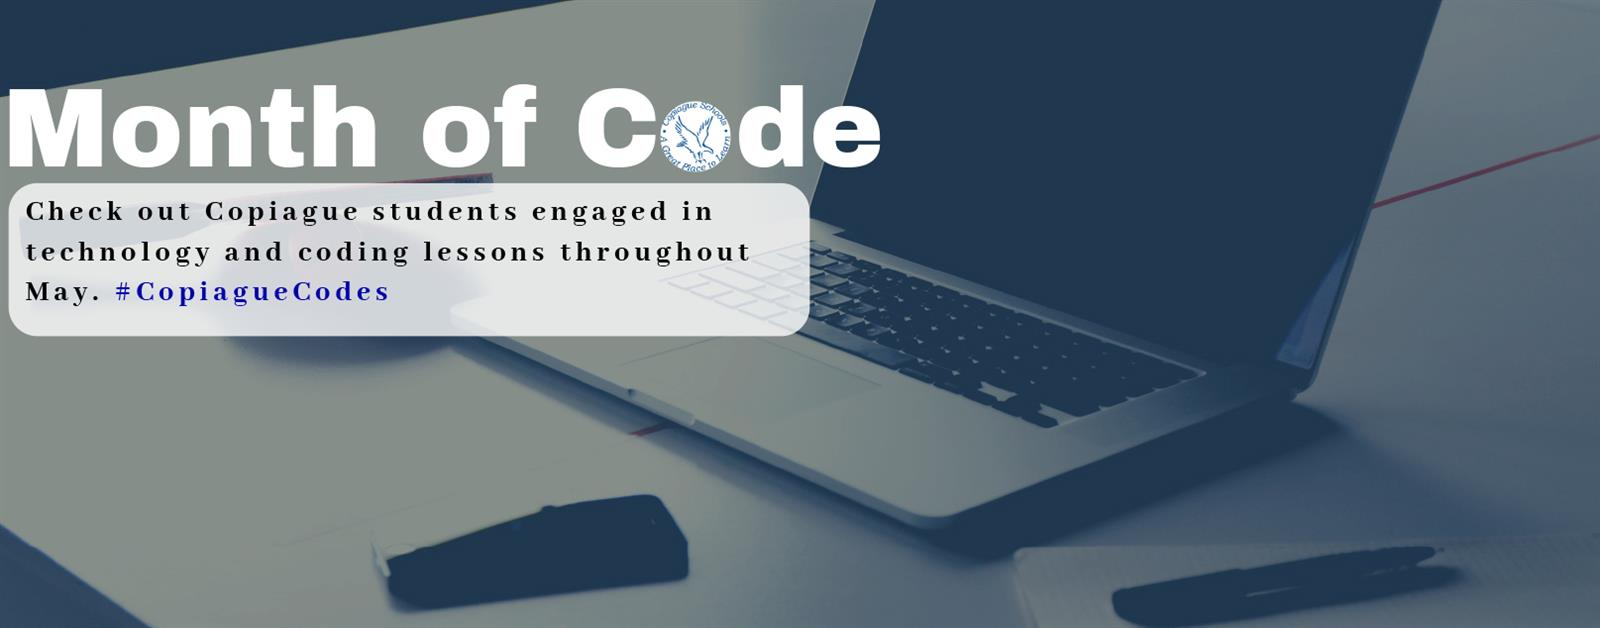 Month of Code